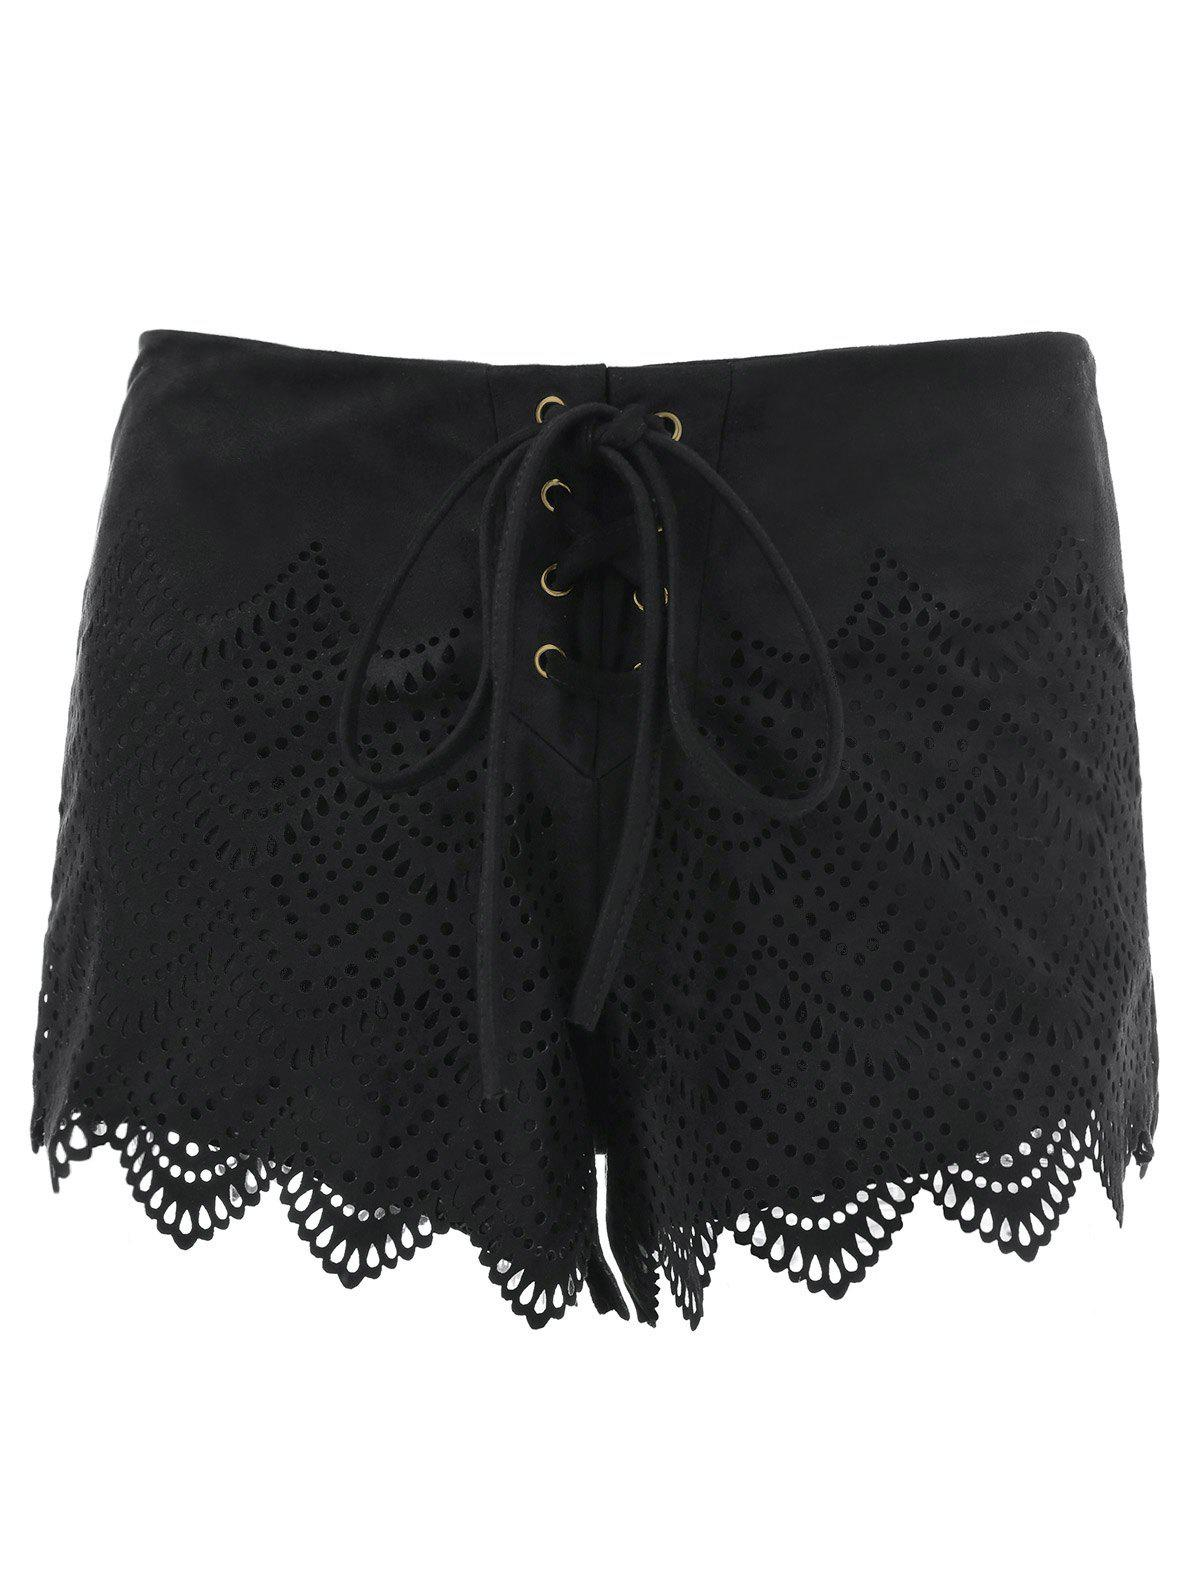 Shops Suede Lace-Up Openwork Scalloped Shorts